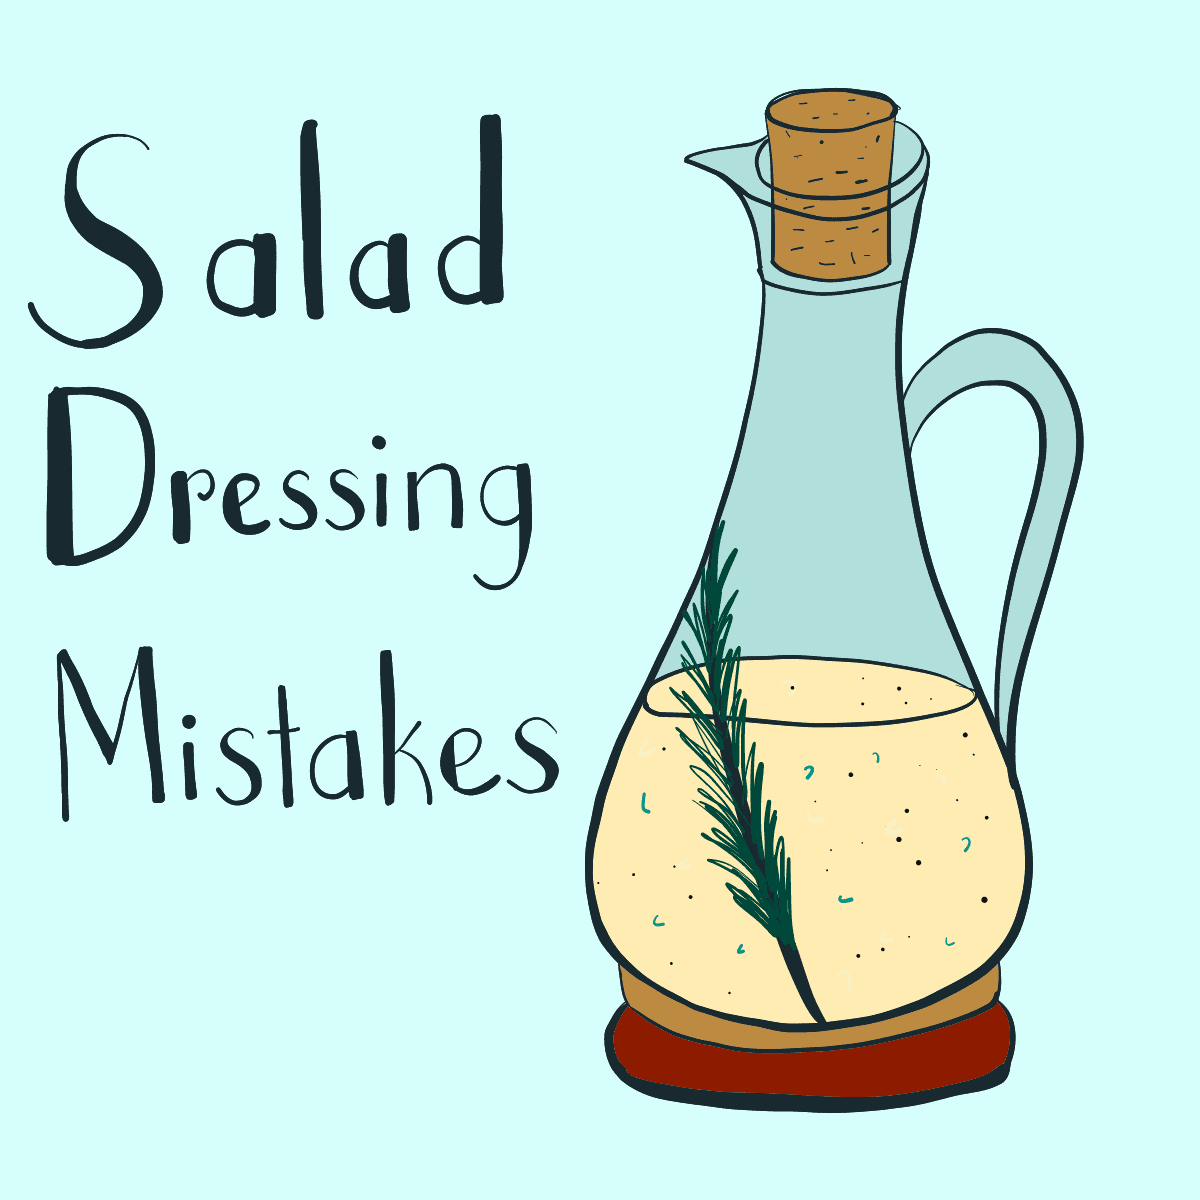 """An illustration showing a bottle of salad dressing with the text """"Salad Dressing Mistakes"""""""